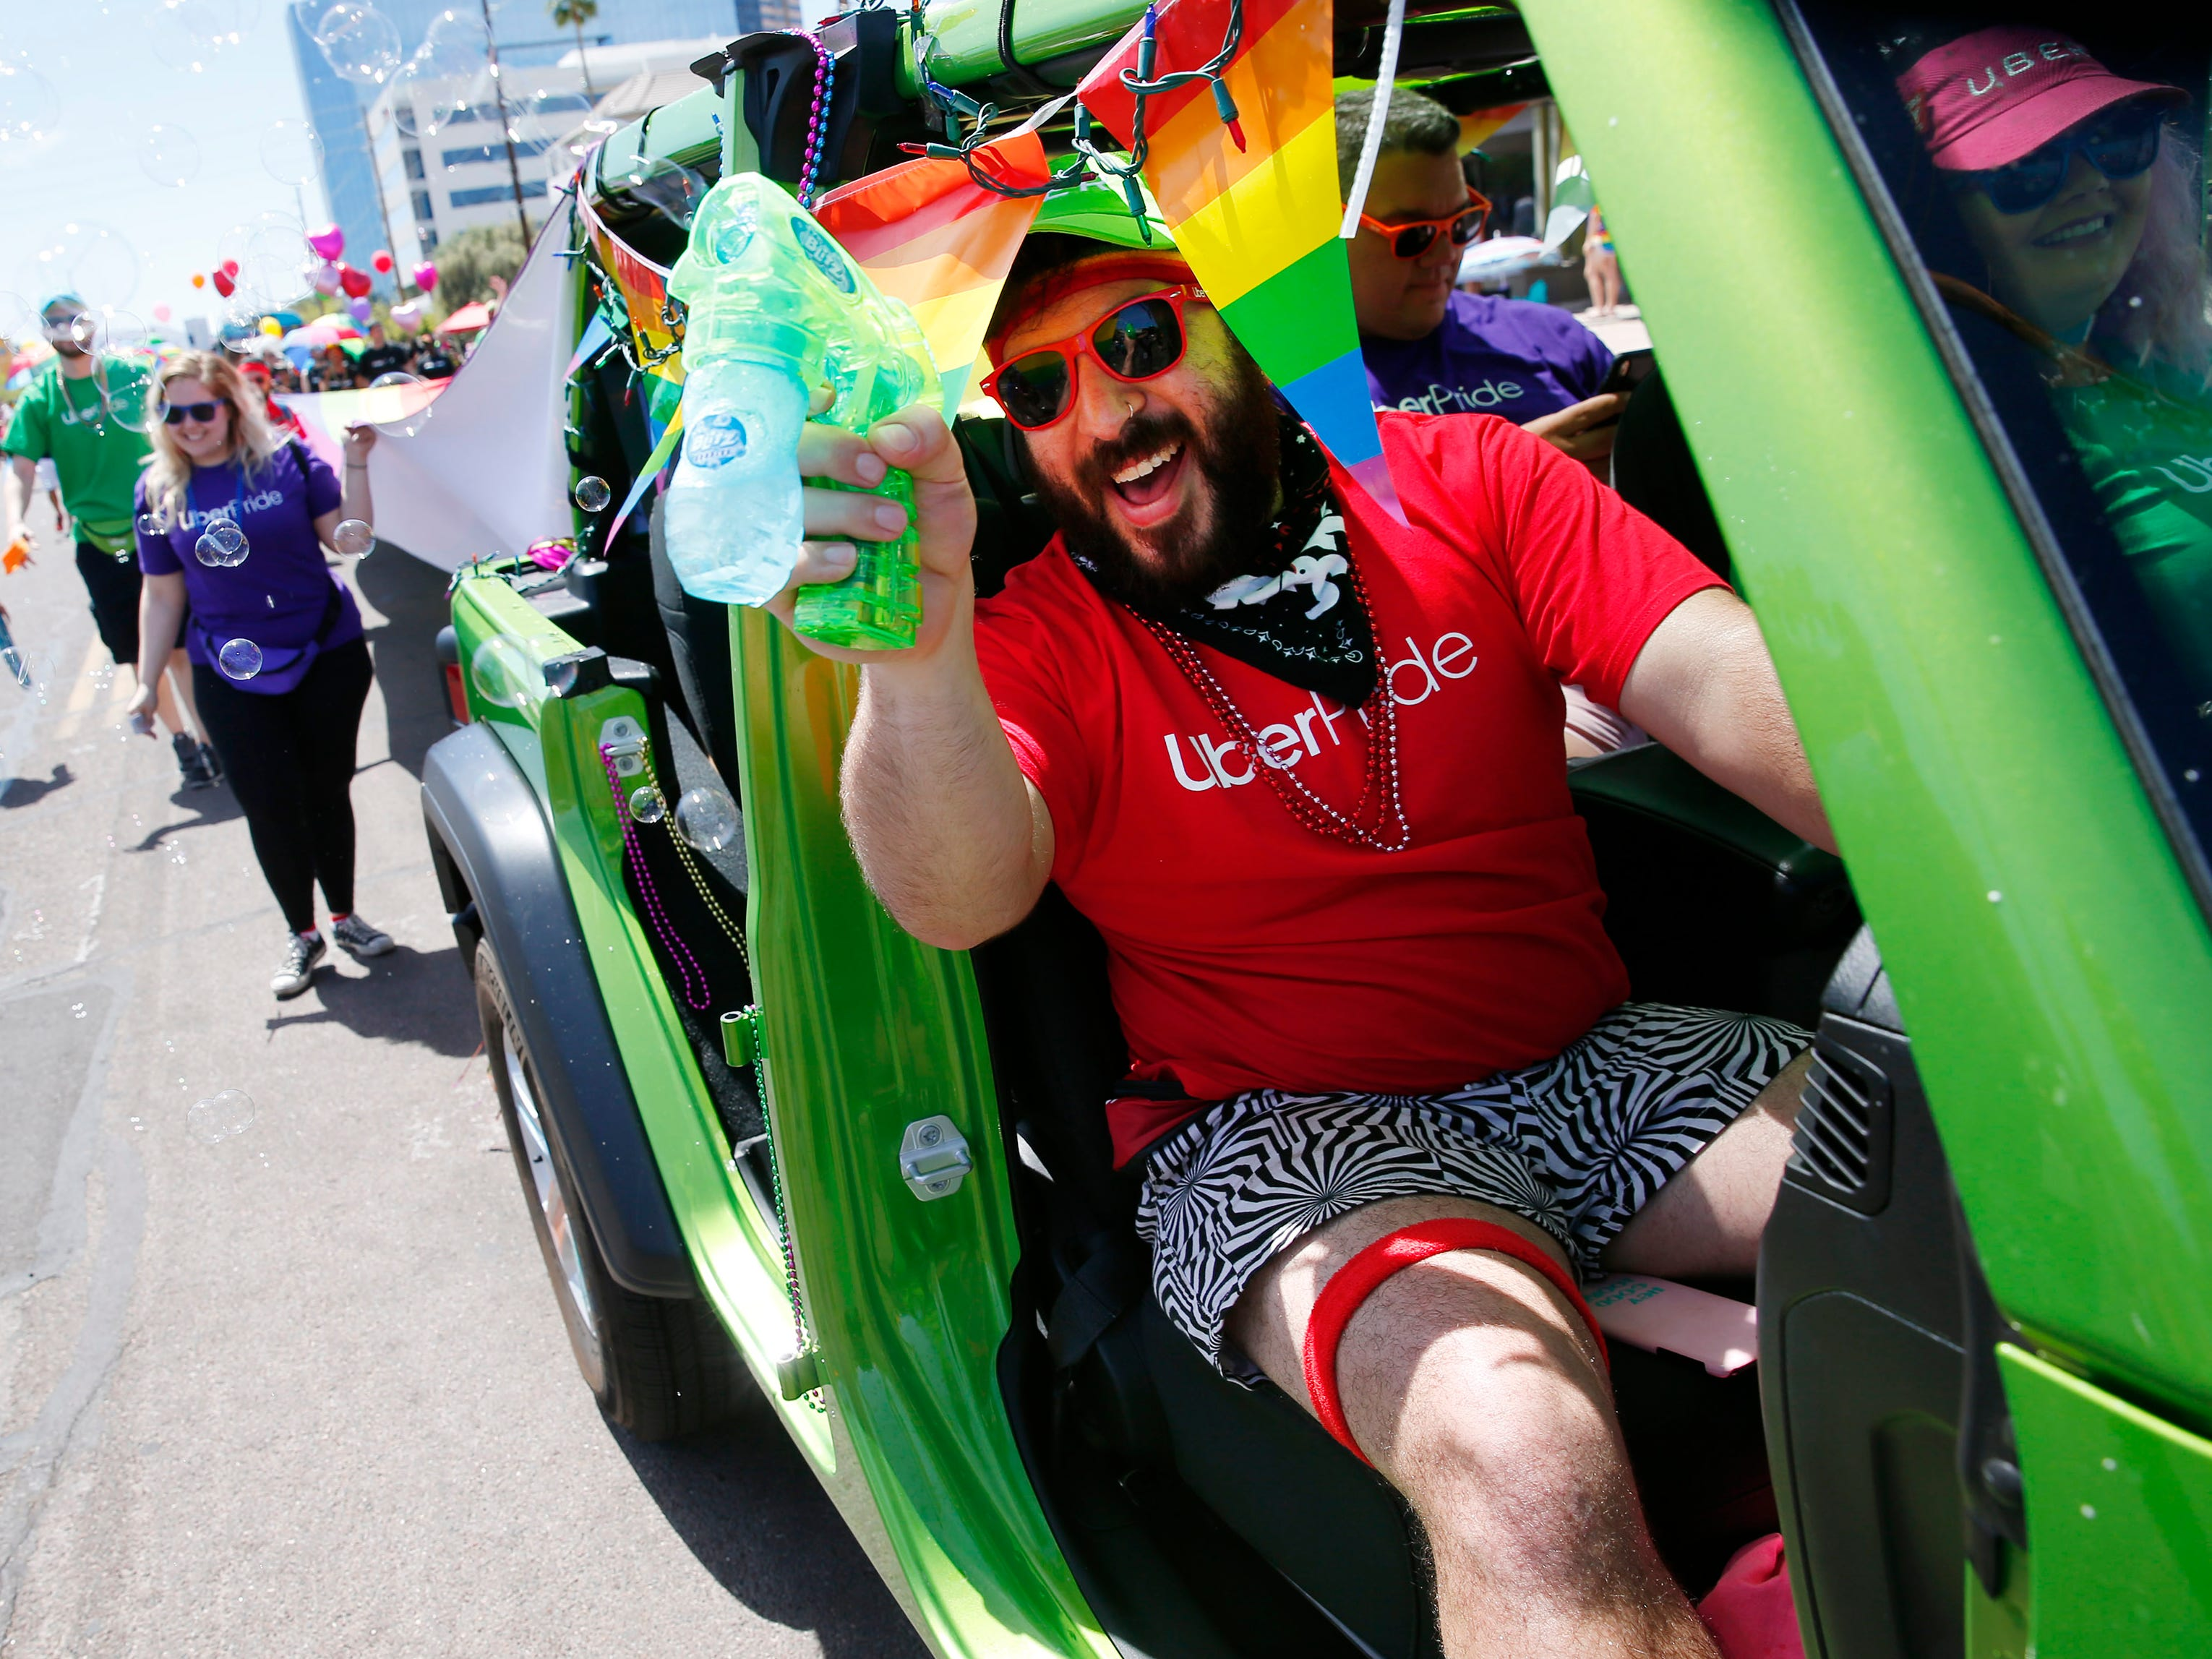 Participants with Uber march during the Phoenix Pride Parade on April 7, 2019.